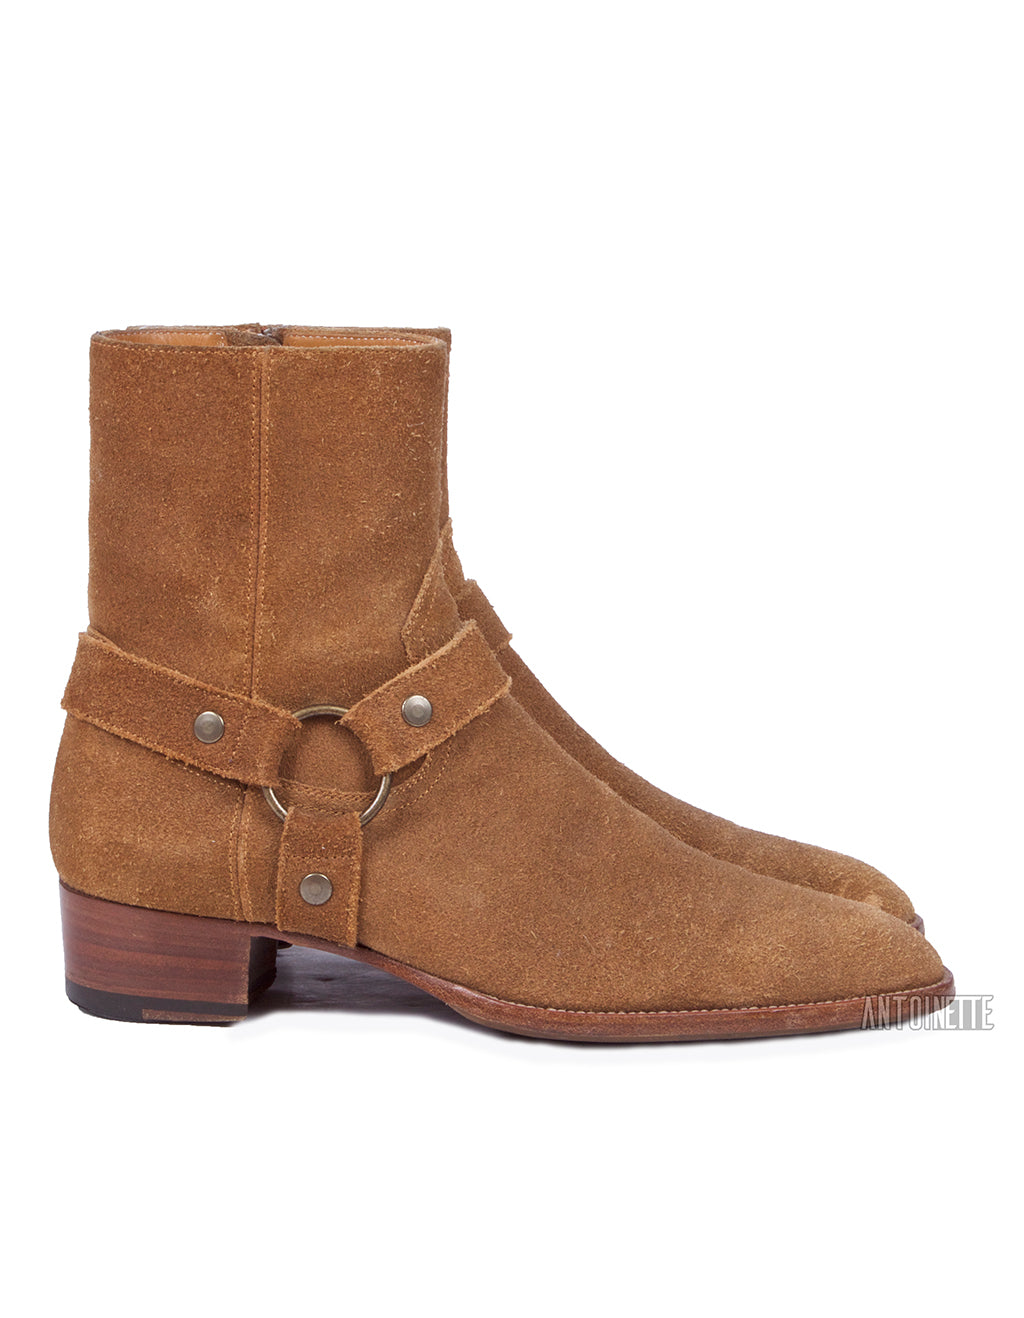 Saint Laurent Siegro Wyatt Harness Boots